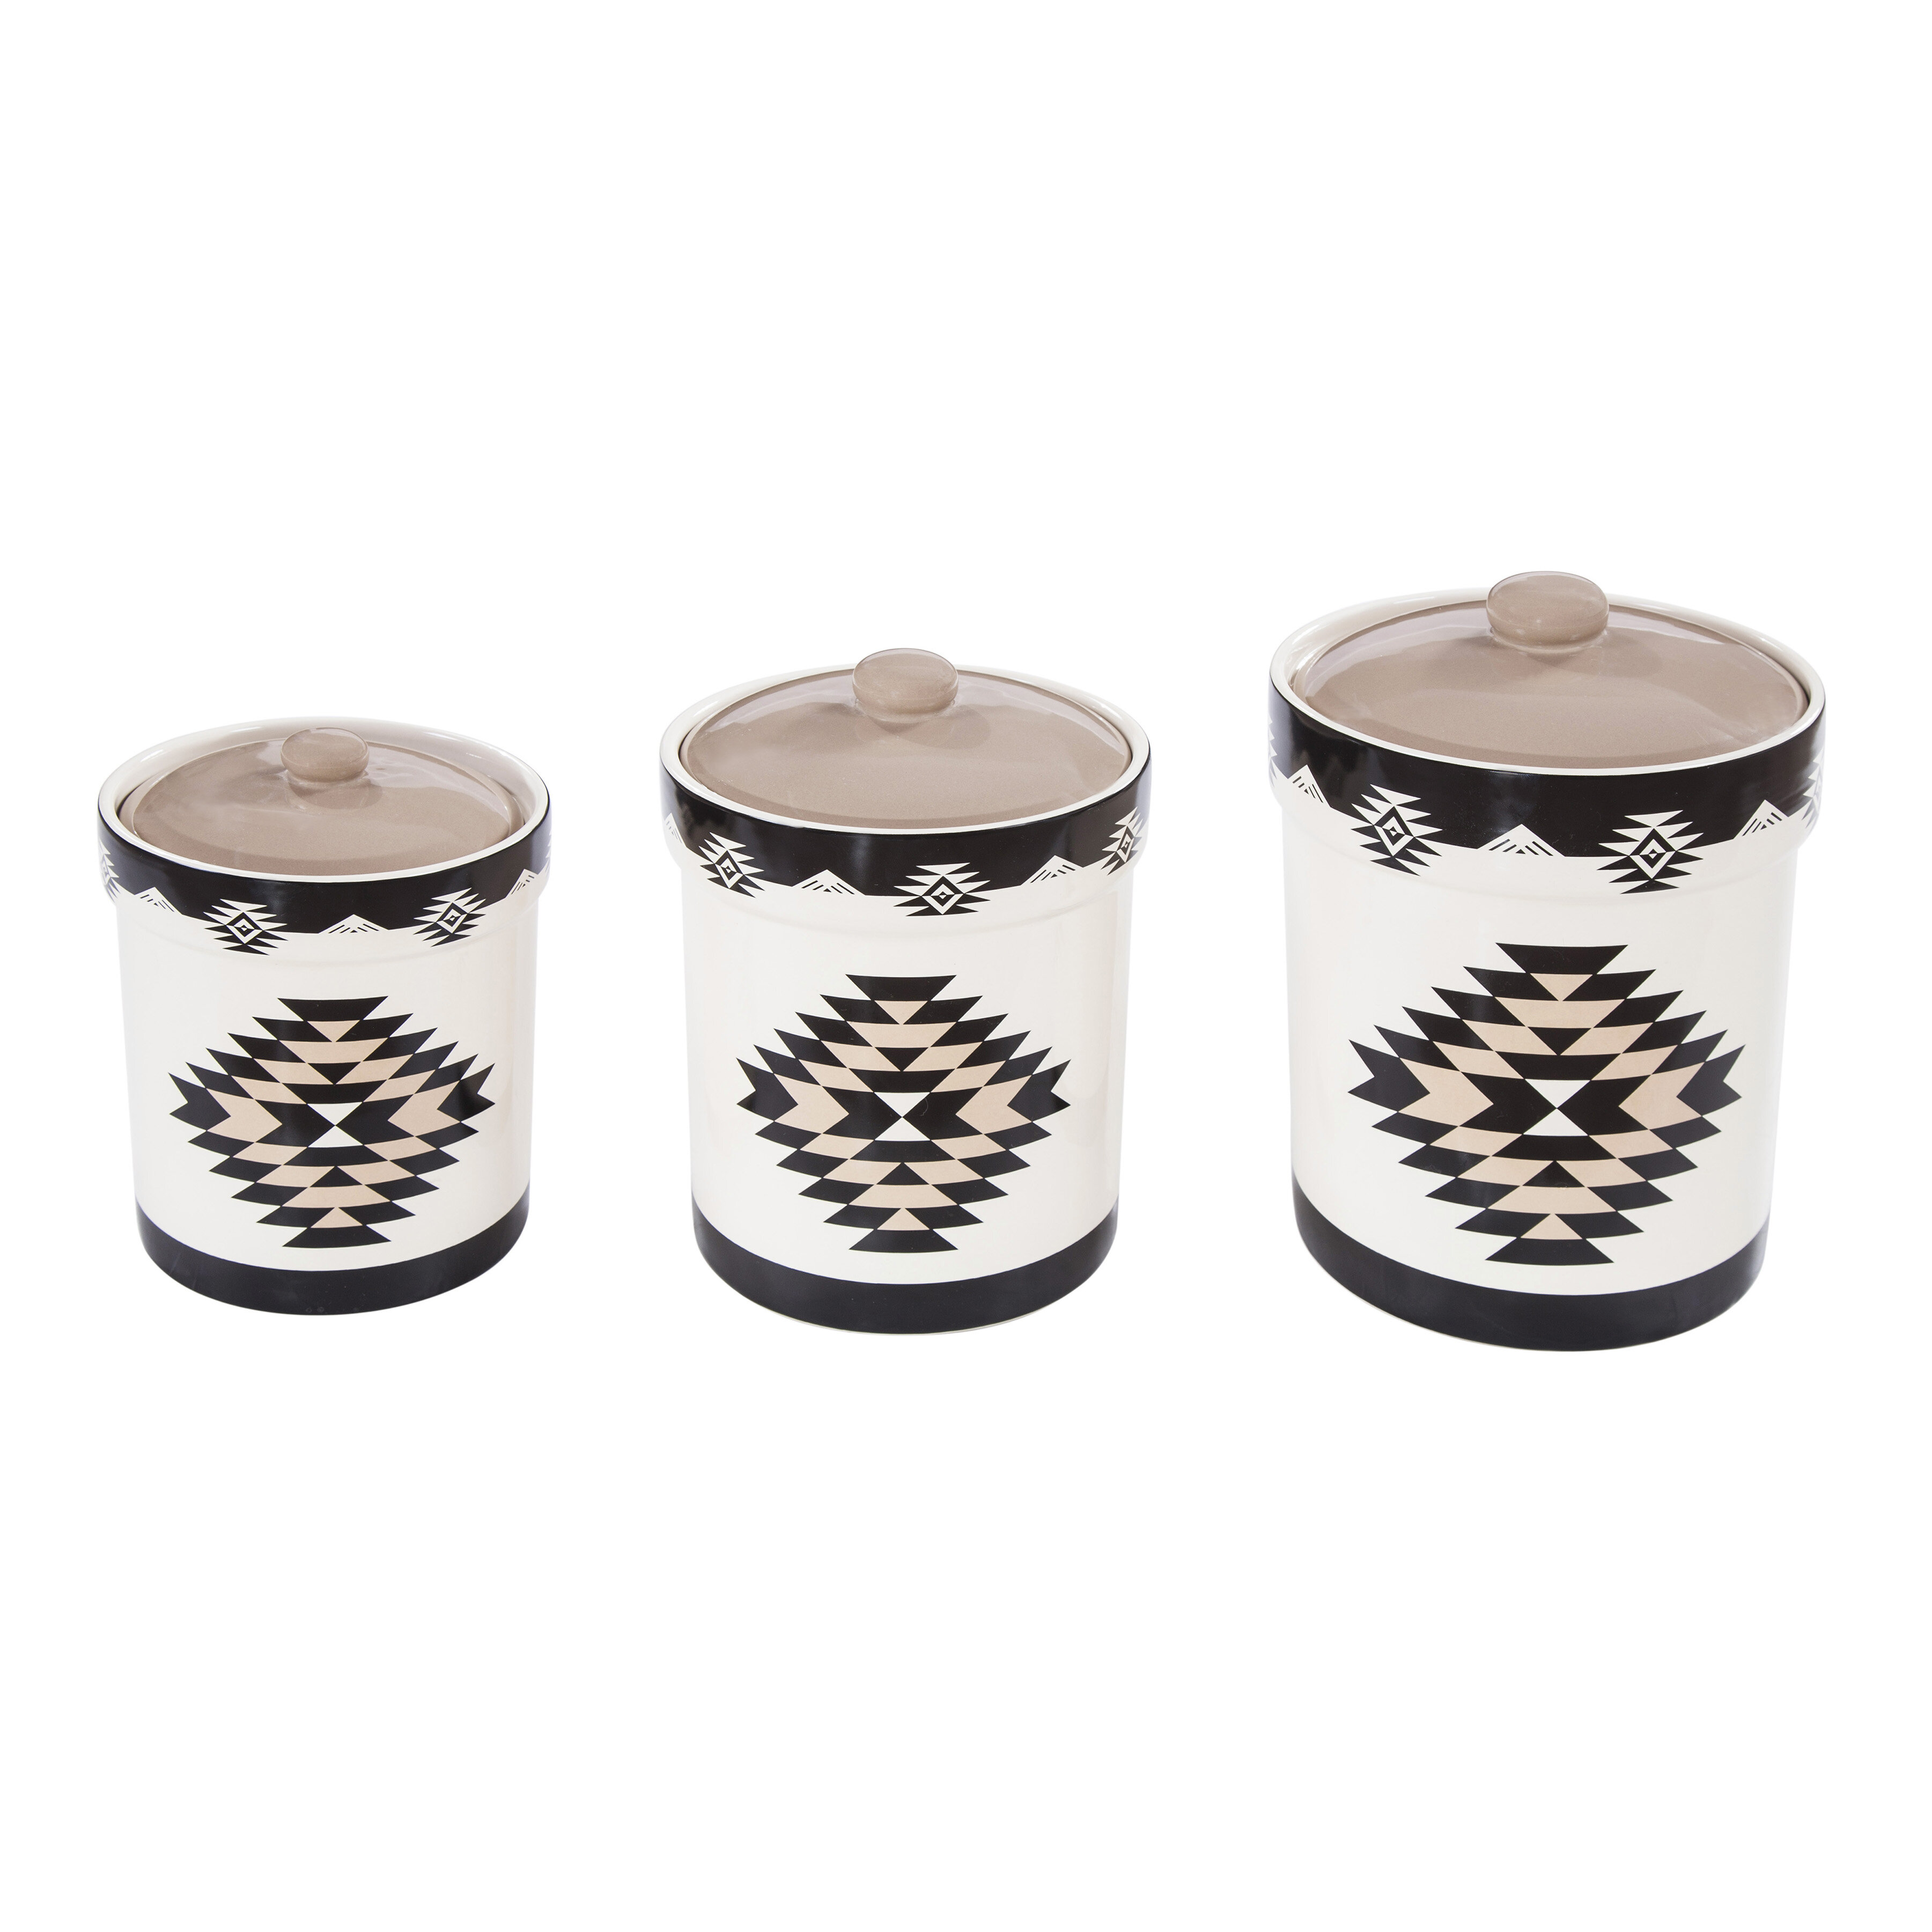 Foundry Select Chalet 3 Piece Kitchen Canister Set Wayfair